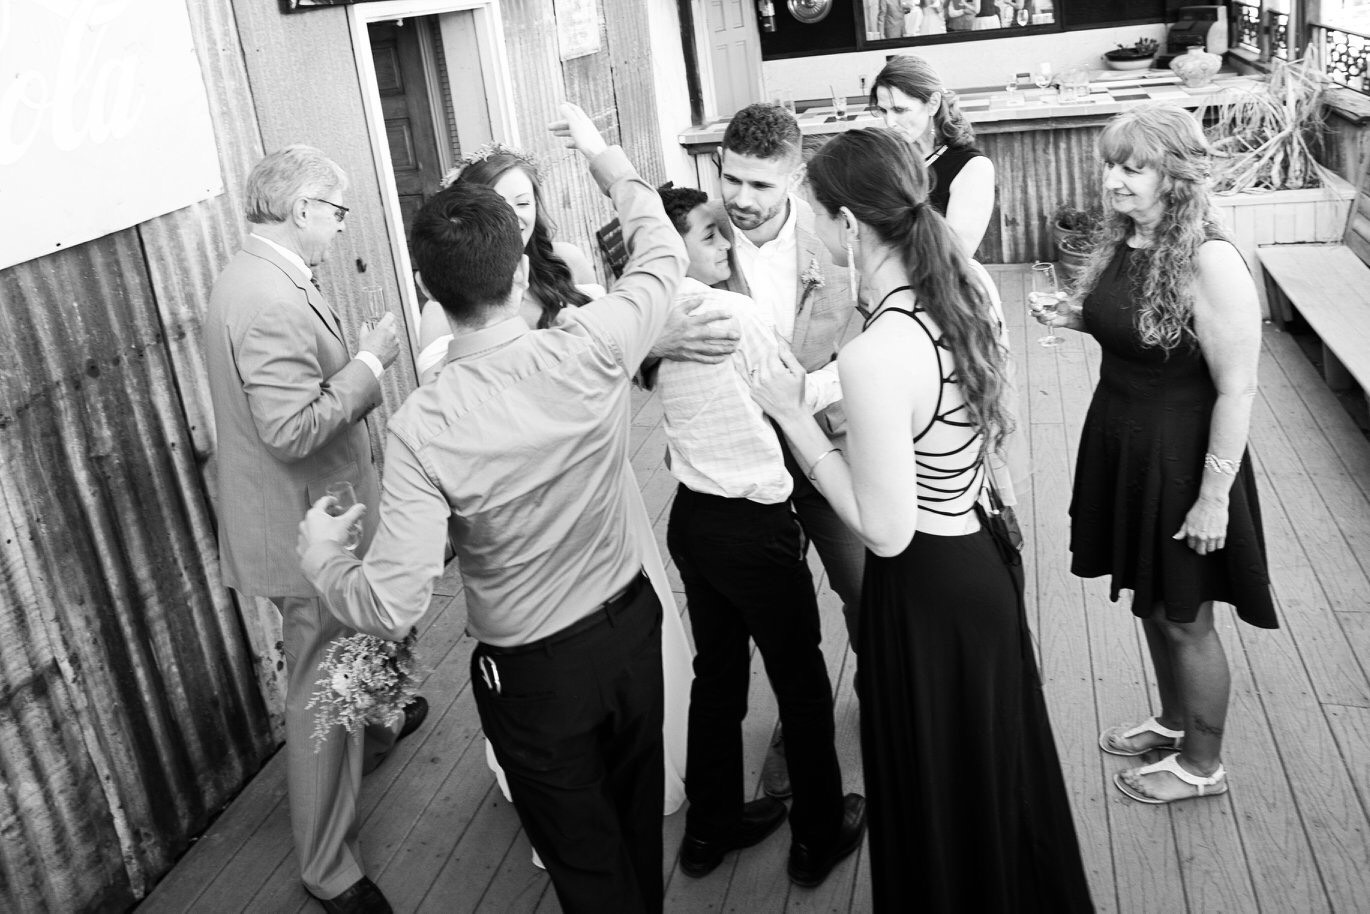 """The next 3 photos   were taken 3/31/2018 during my brother's wedding at Havana 59 in the historic   """"17th st. market"""" area of Richmond. My brother and sister in law asked me to   officiate their wedding ceremony. This photo was taken moments after it was   over. My brother is seen embracing my oldest child who was overcome with   happiness for him. I love seeing their tender embrace. Also in the photo is   myself, my husband seen embracing my SIL. My father to the left, my mother is   in the back right, and my brother's MIL is in the right."""